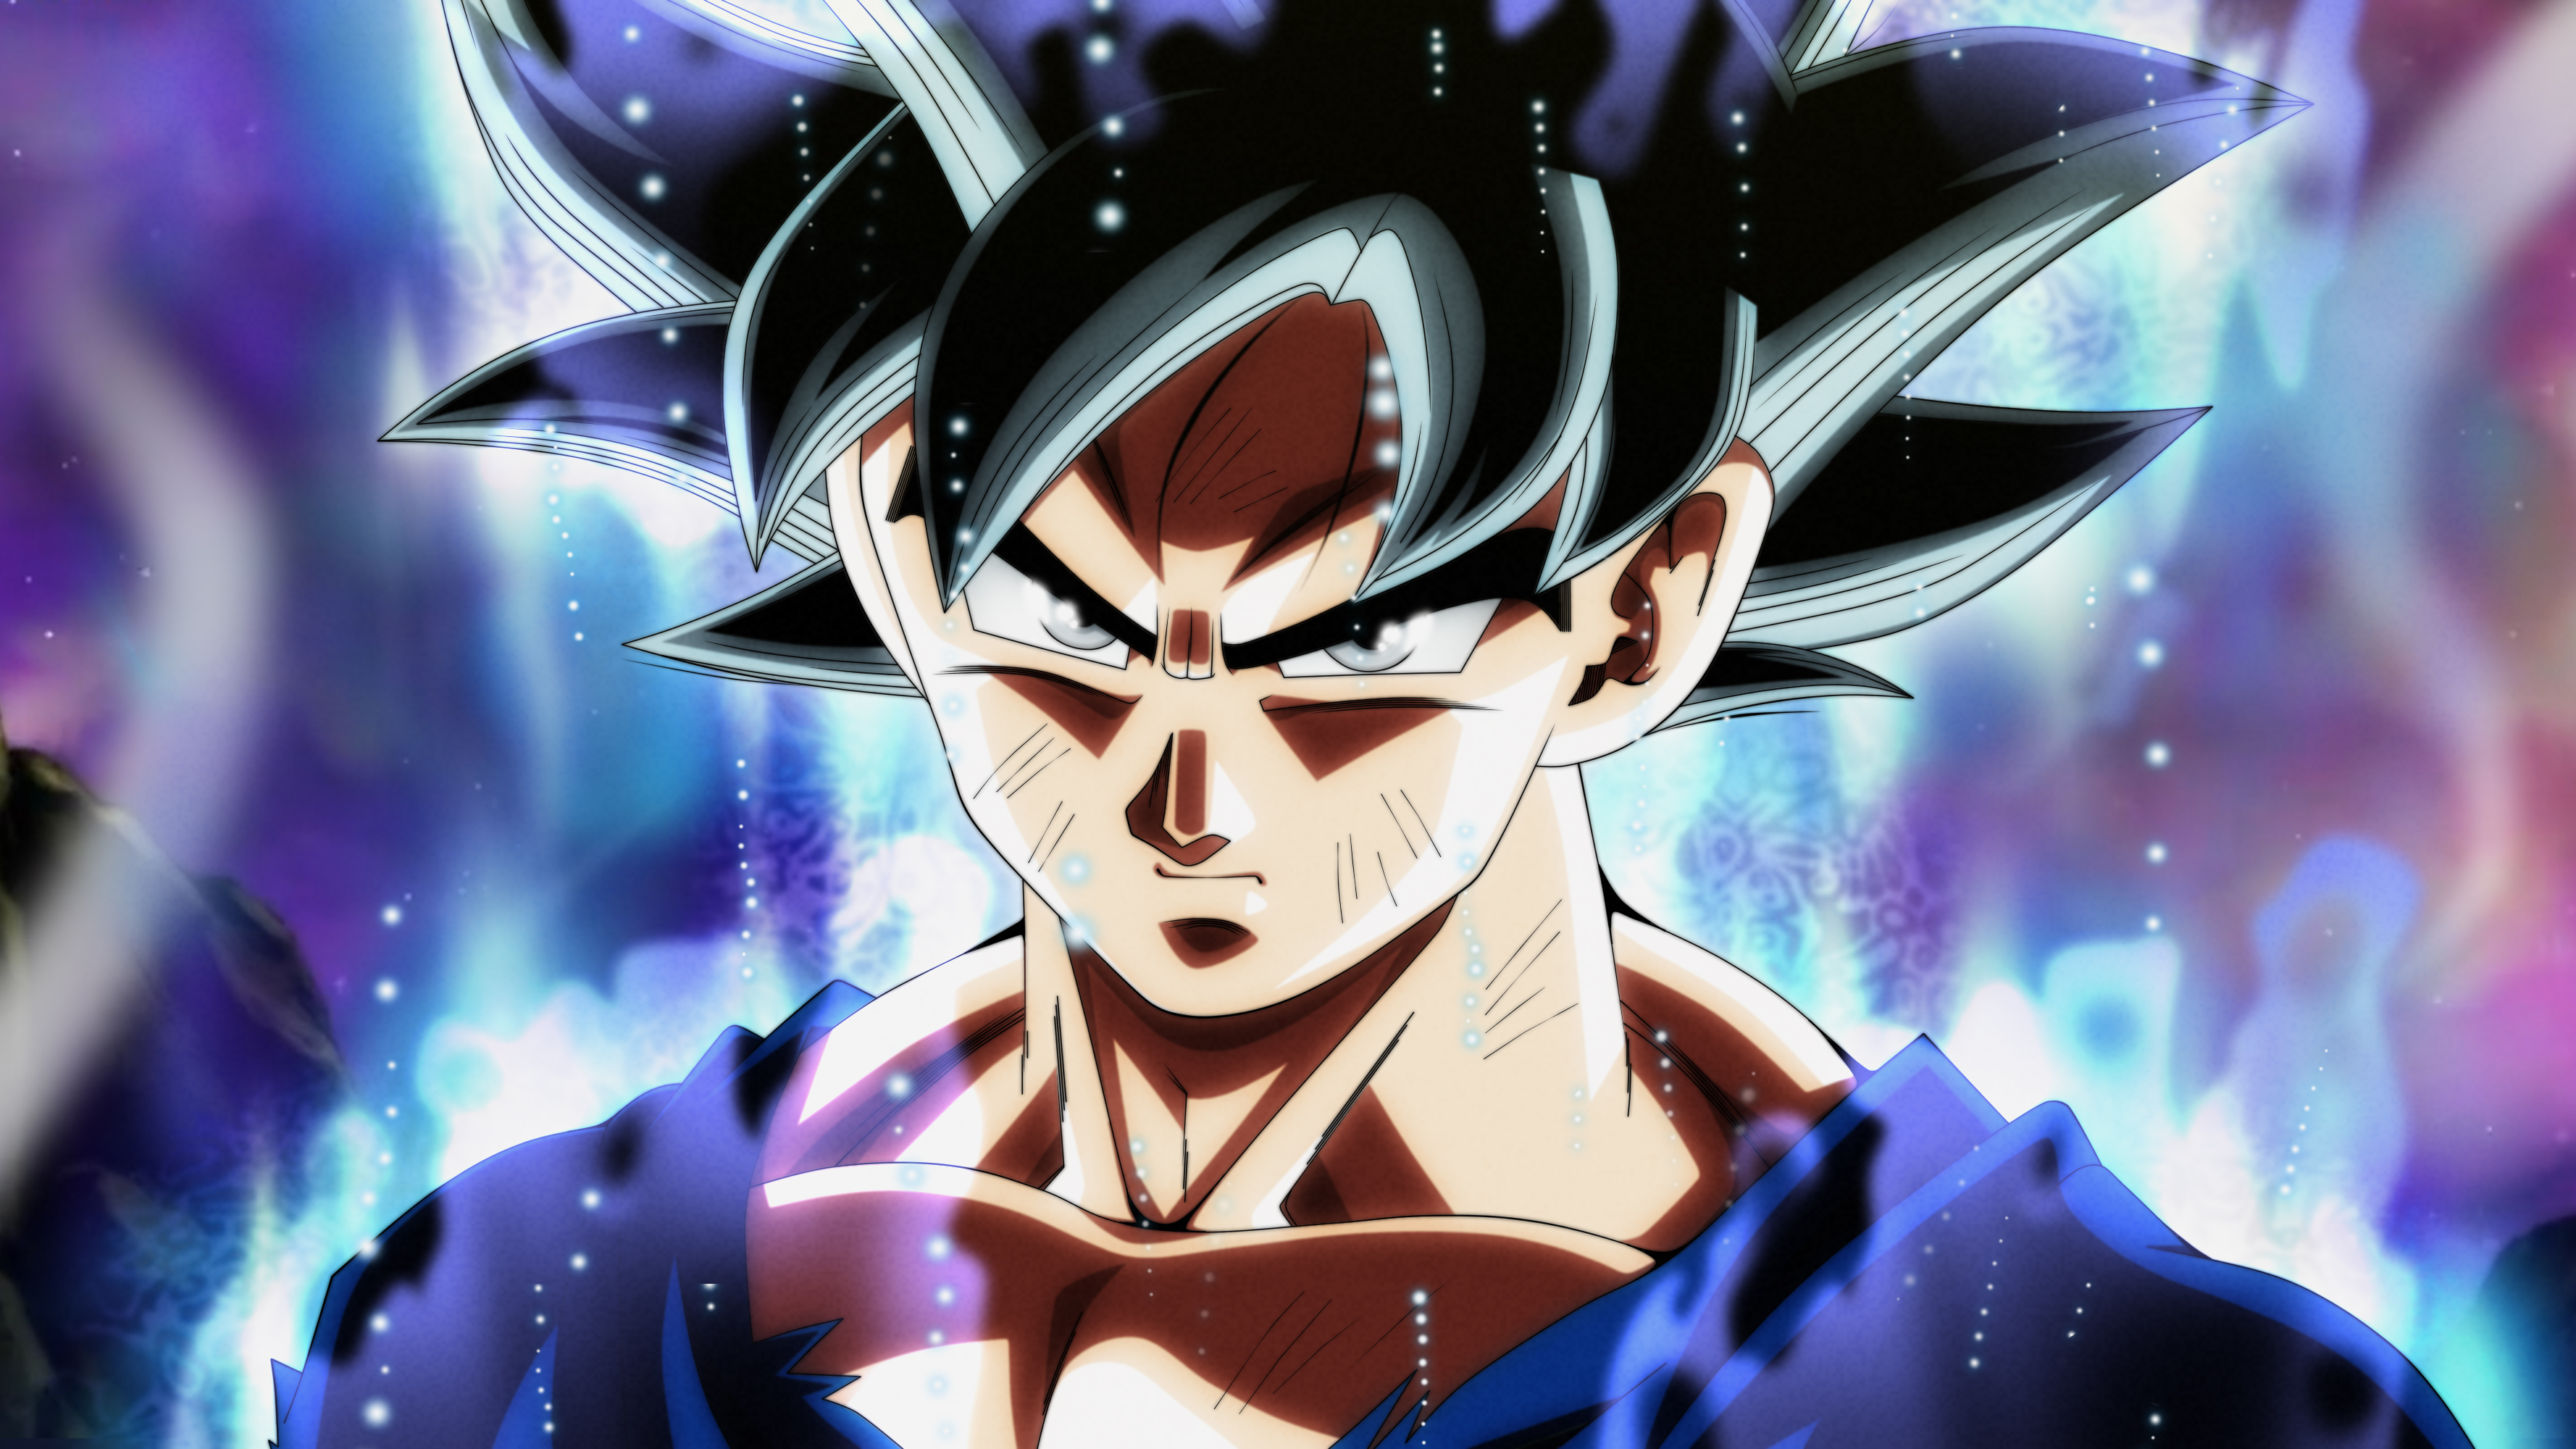 Ultra instinct dragon ball super hd anime 4k wallpapers images backgrounds photos and pictures - Imagenes de dragon ball super ultra instinto ...